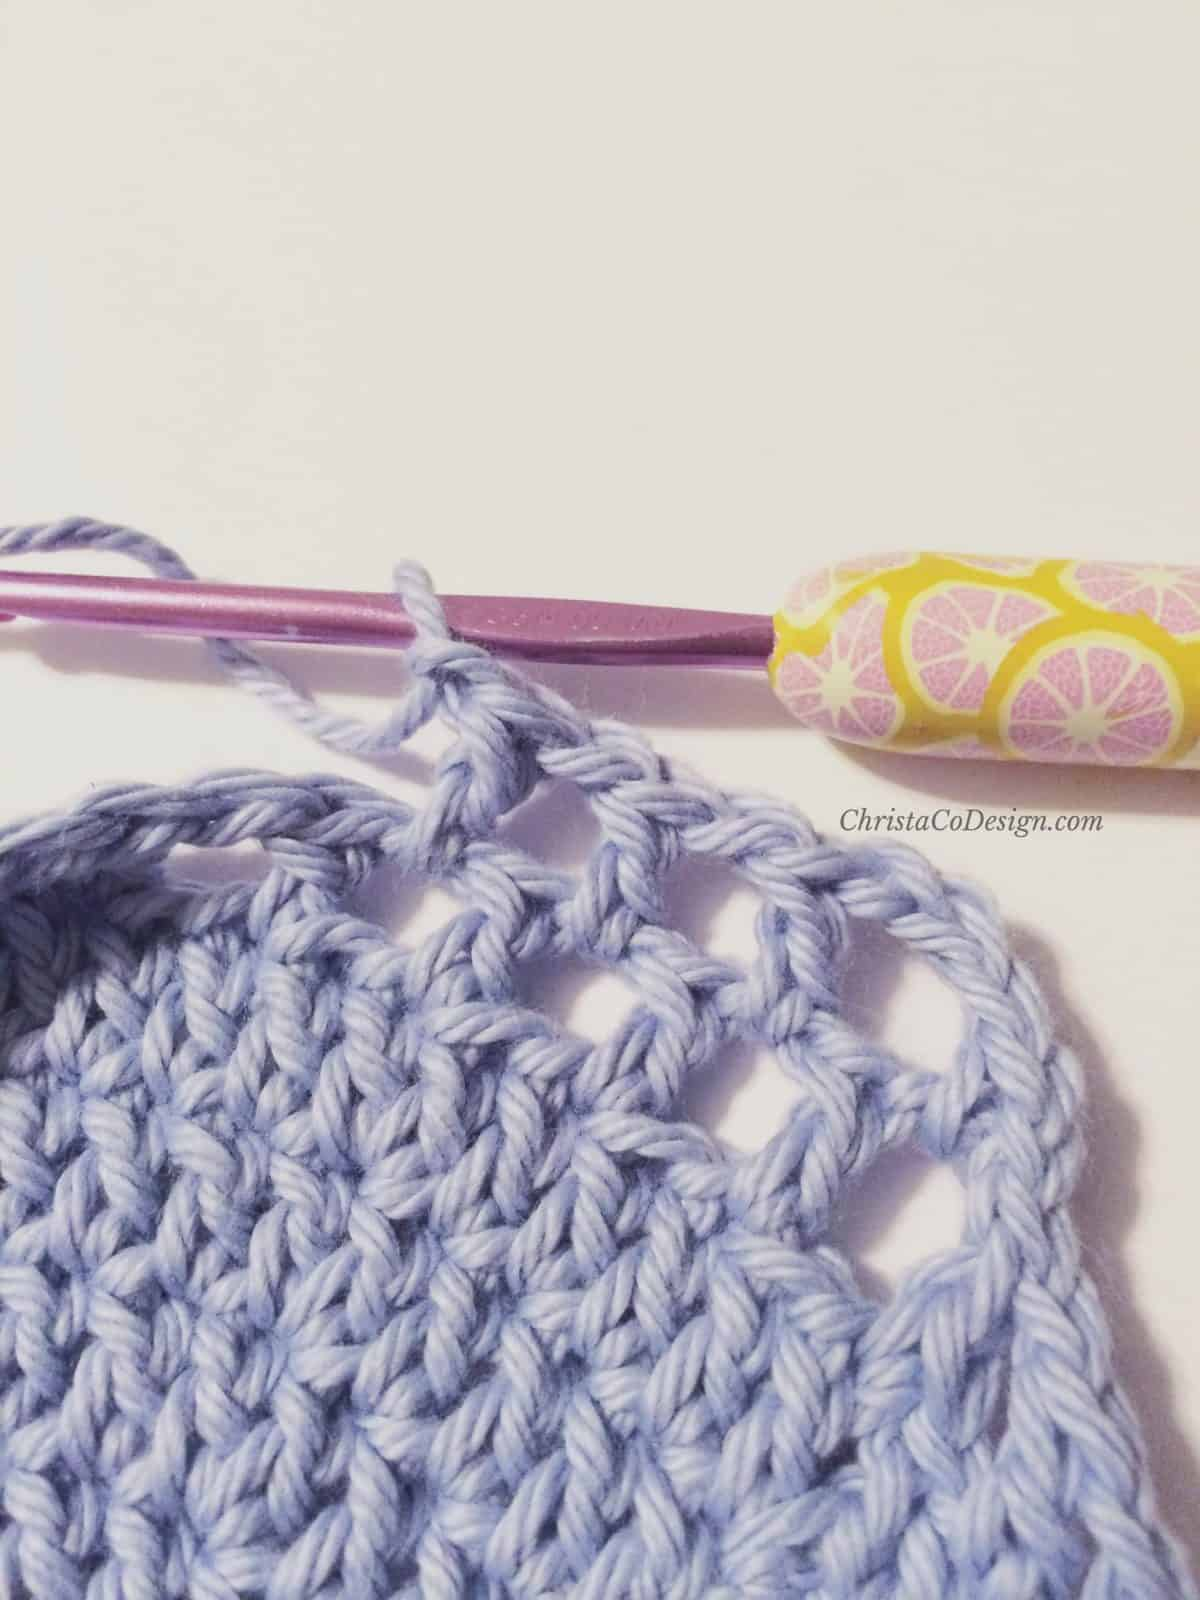 picture of several r14 crochet mesh stitches